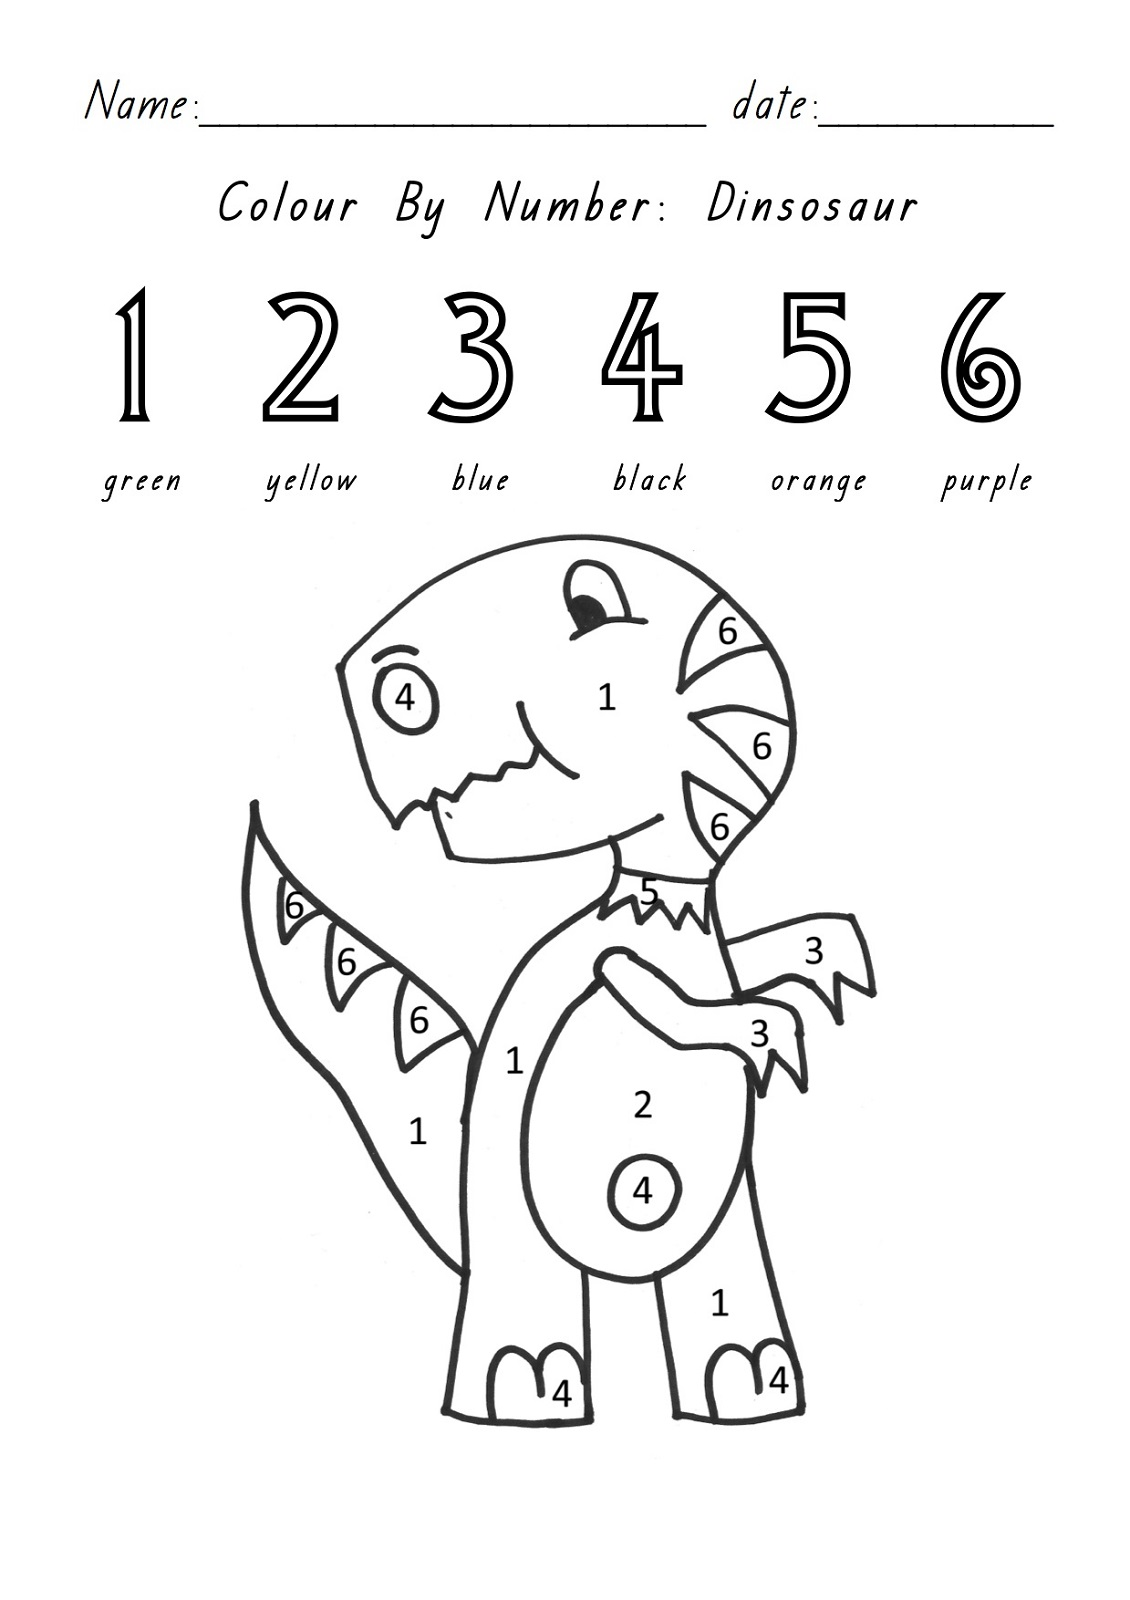 number matching coloring pages candy corn number matching coloring page cursive number coloring pages matching